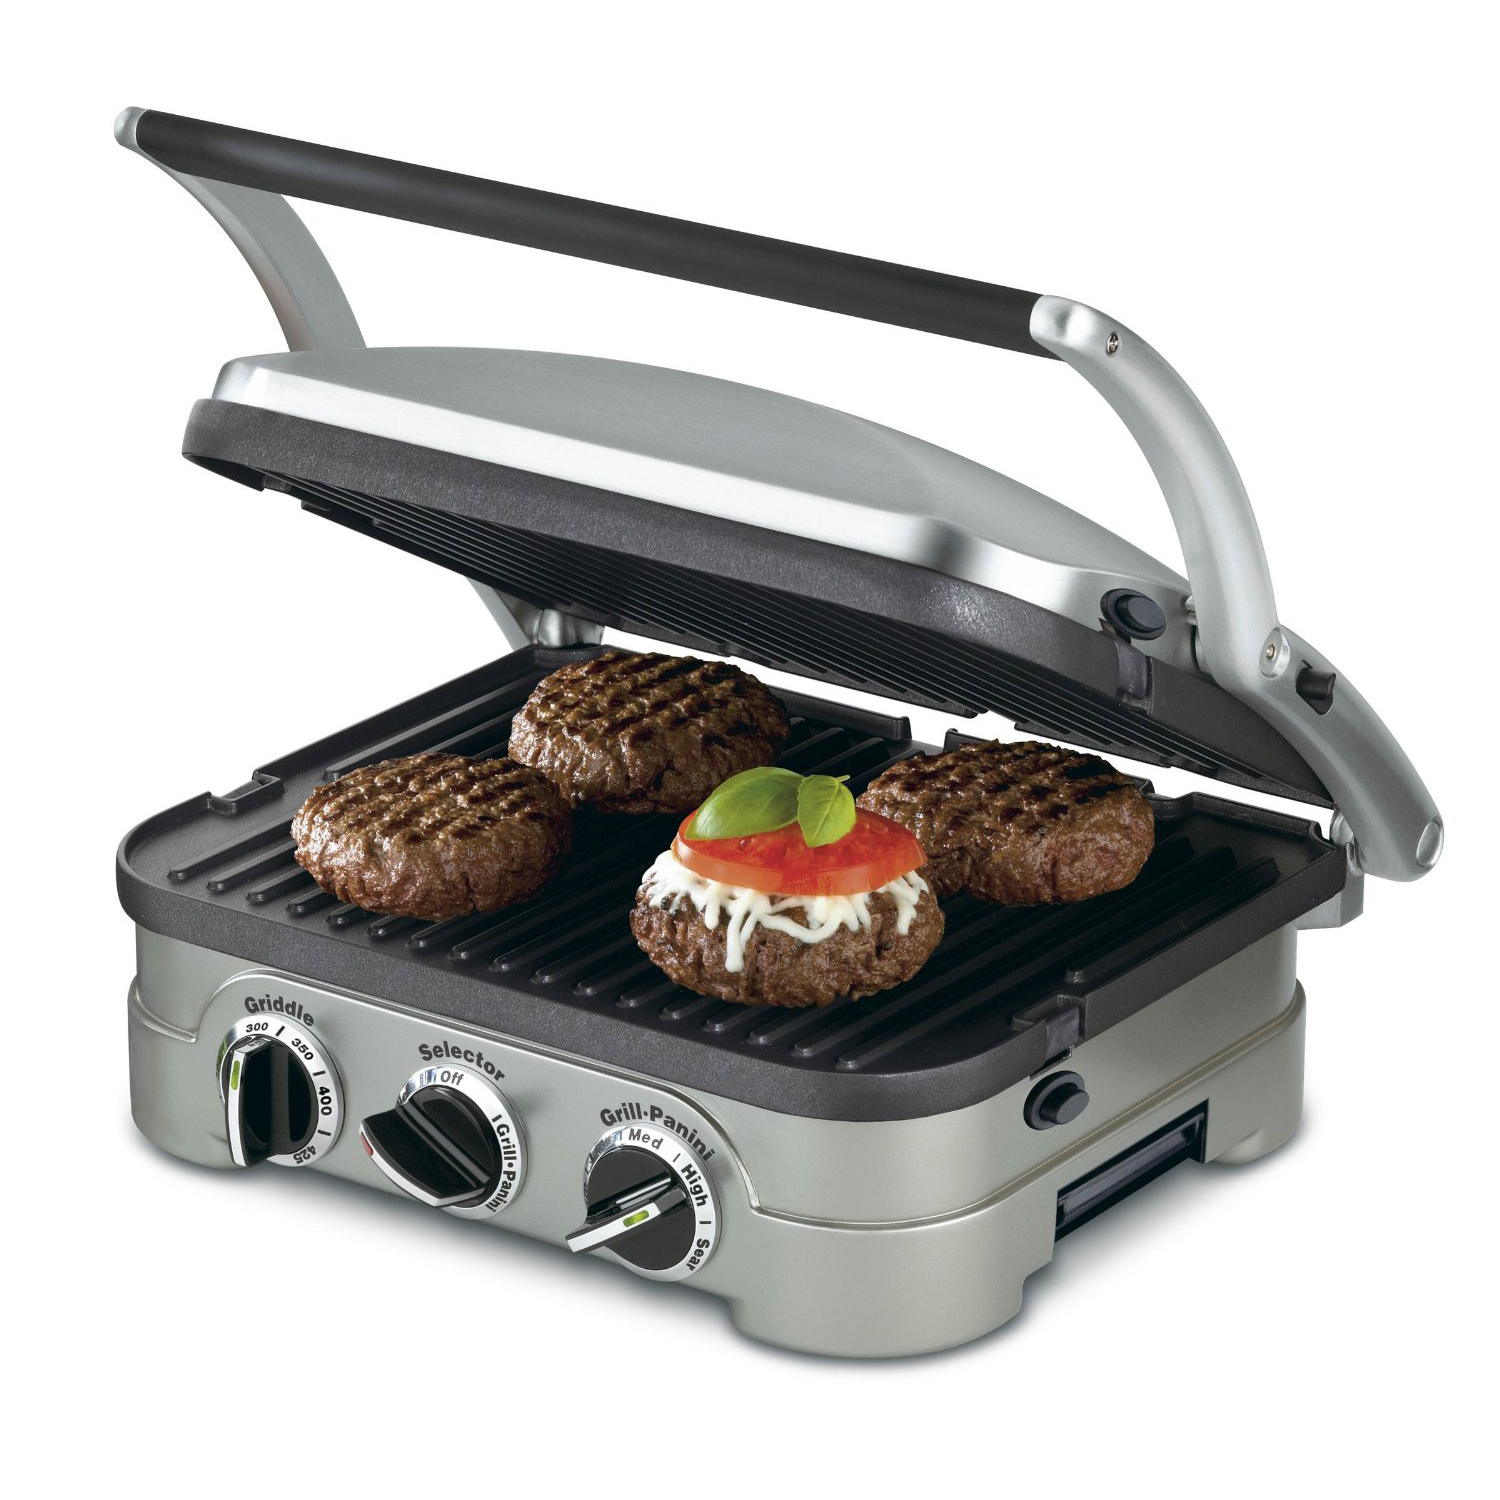 Cuisinart Griddler Stainless Steel 5-in-1 Grill/Griddle & Panini Press